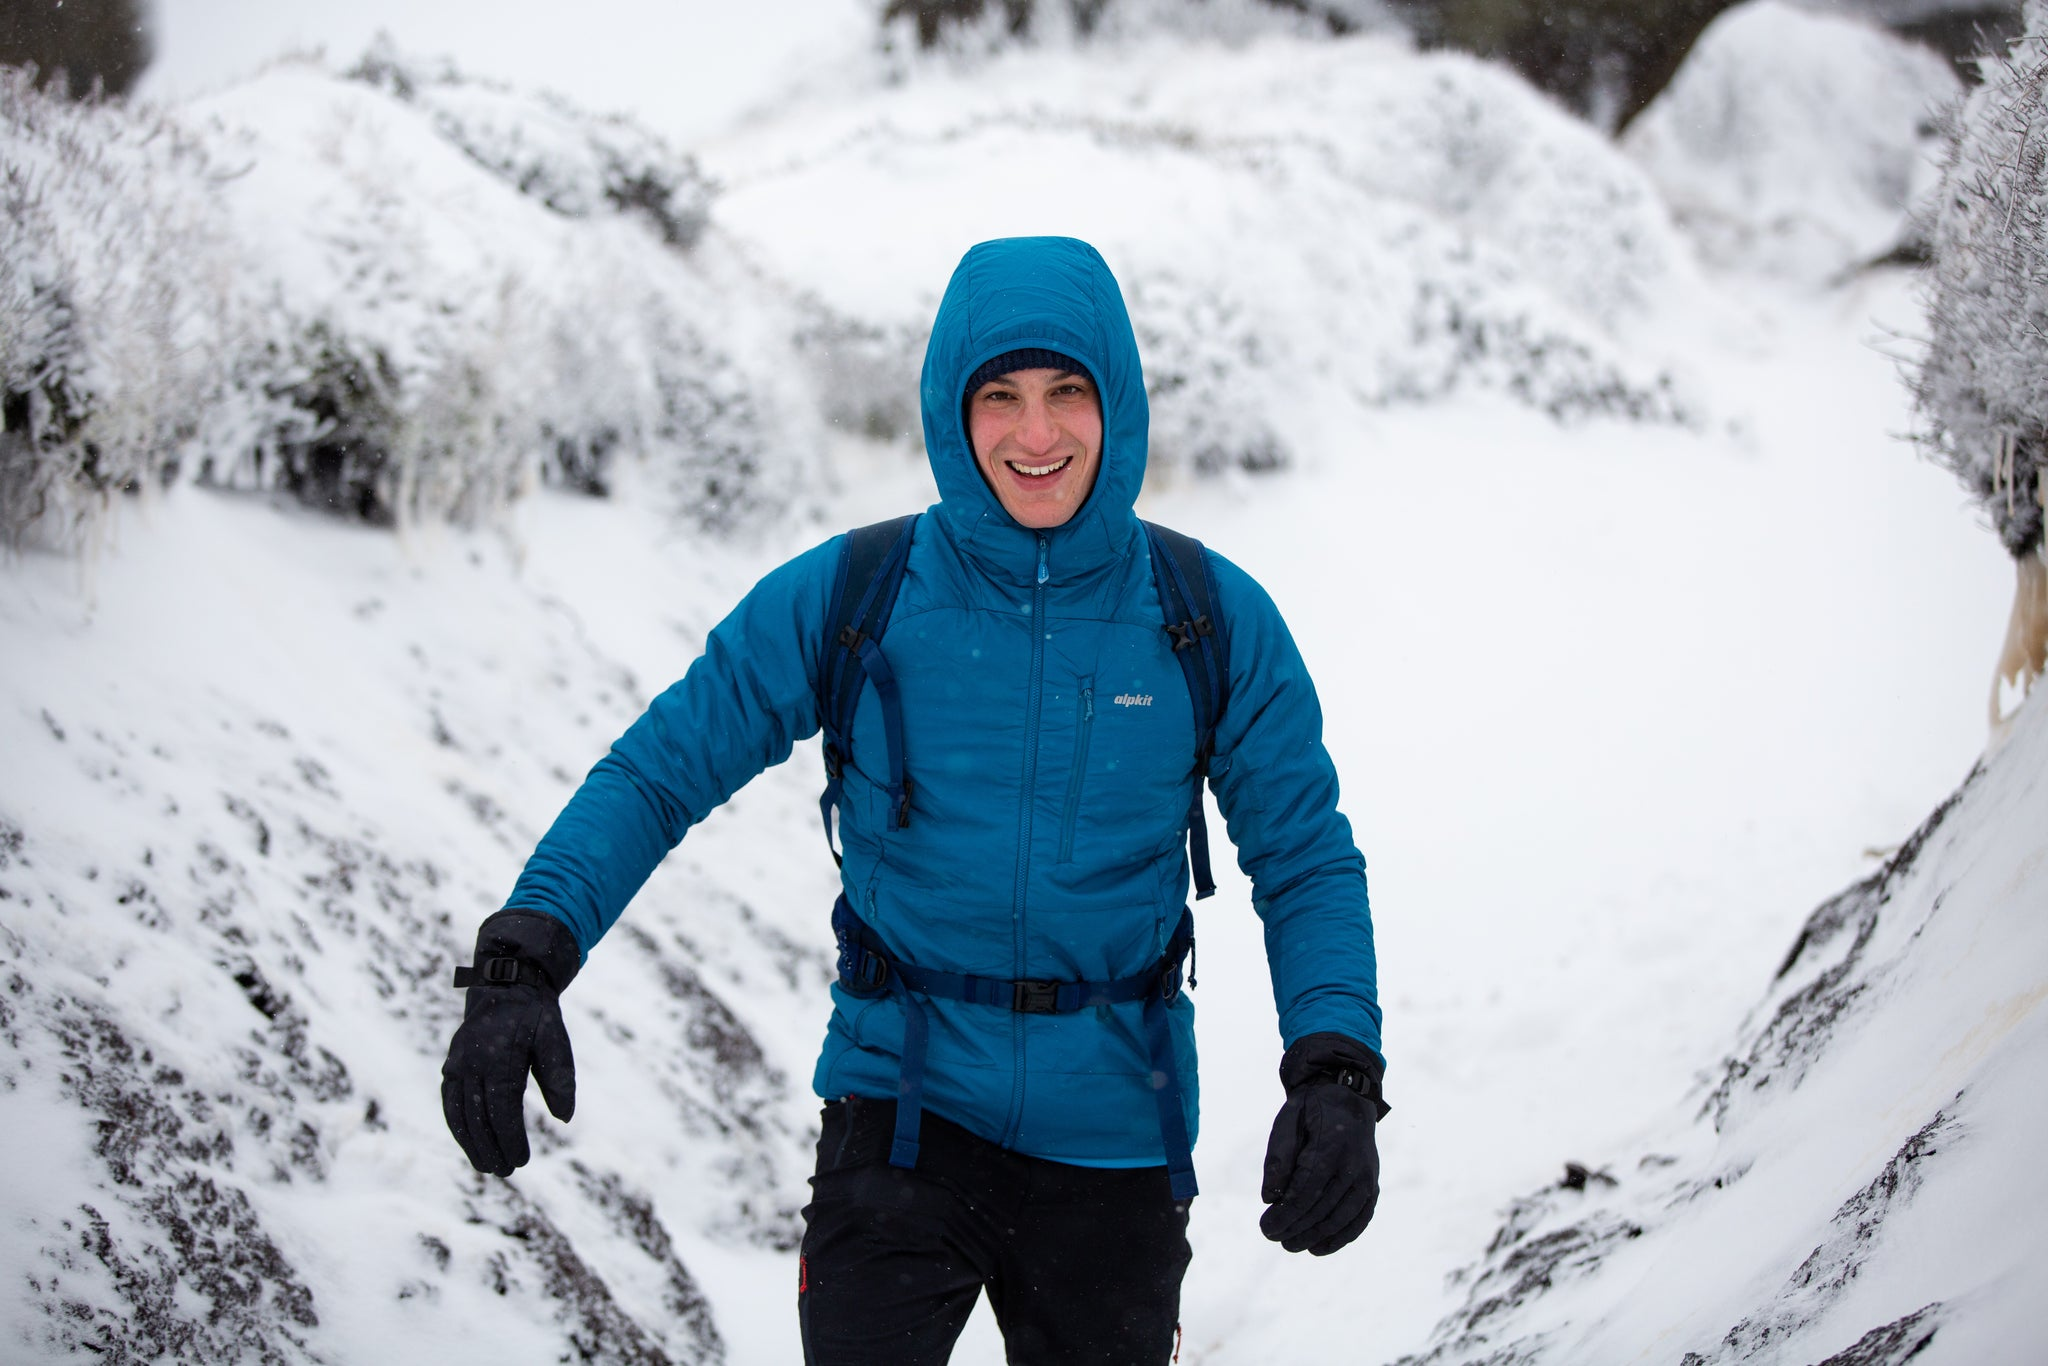 Walking in the snow on the Kinder Plateau in the Katabatic Primaloft Gold Active insulated jacket